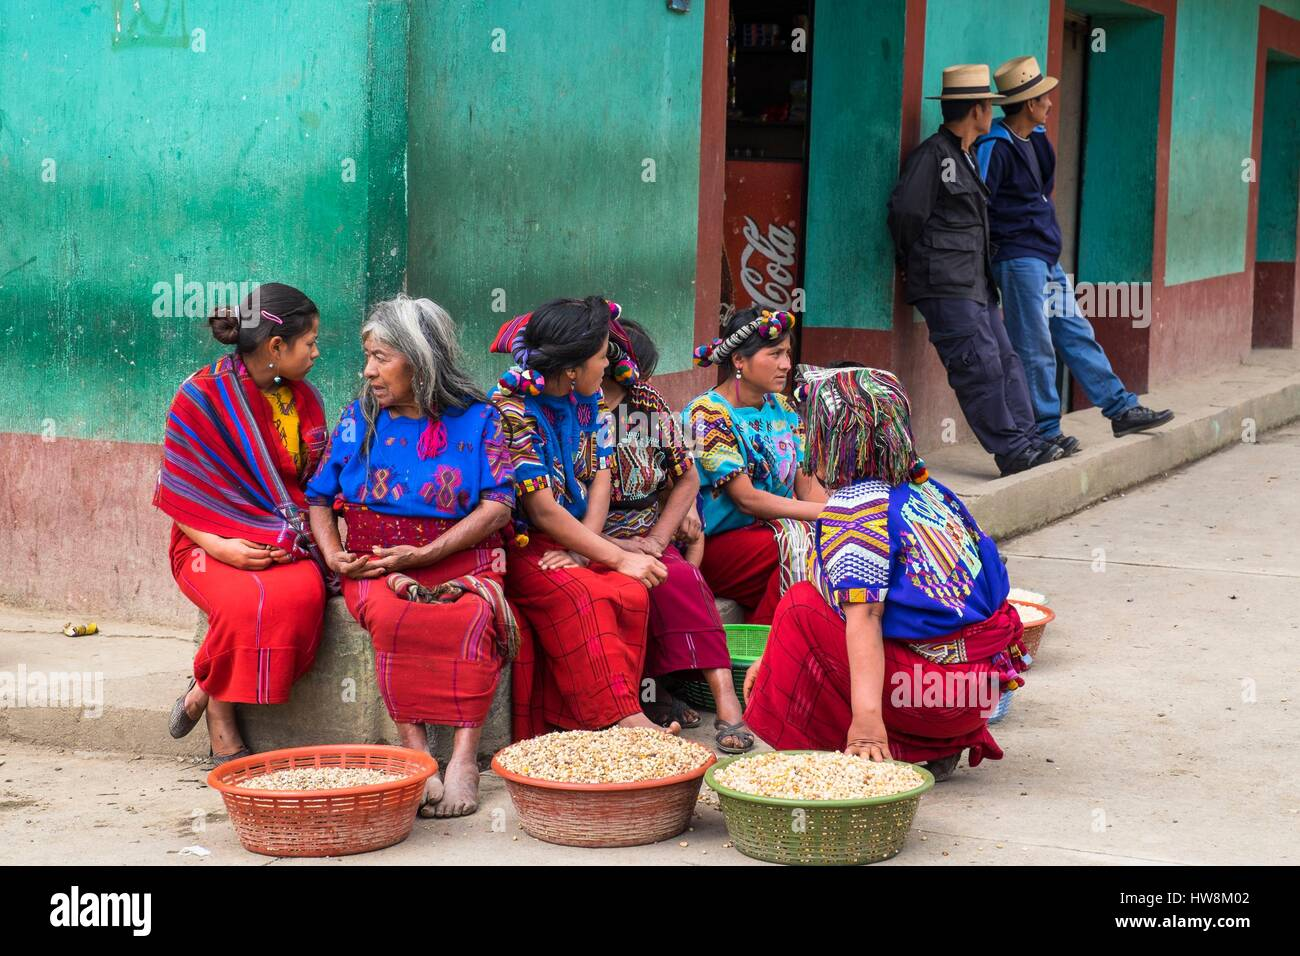 Guatemala, Quiche department, Nebaj, Ixil Mayan village, nestled in the Sierra de los Cuchumatanes, festival day - Stock Image